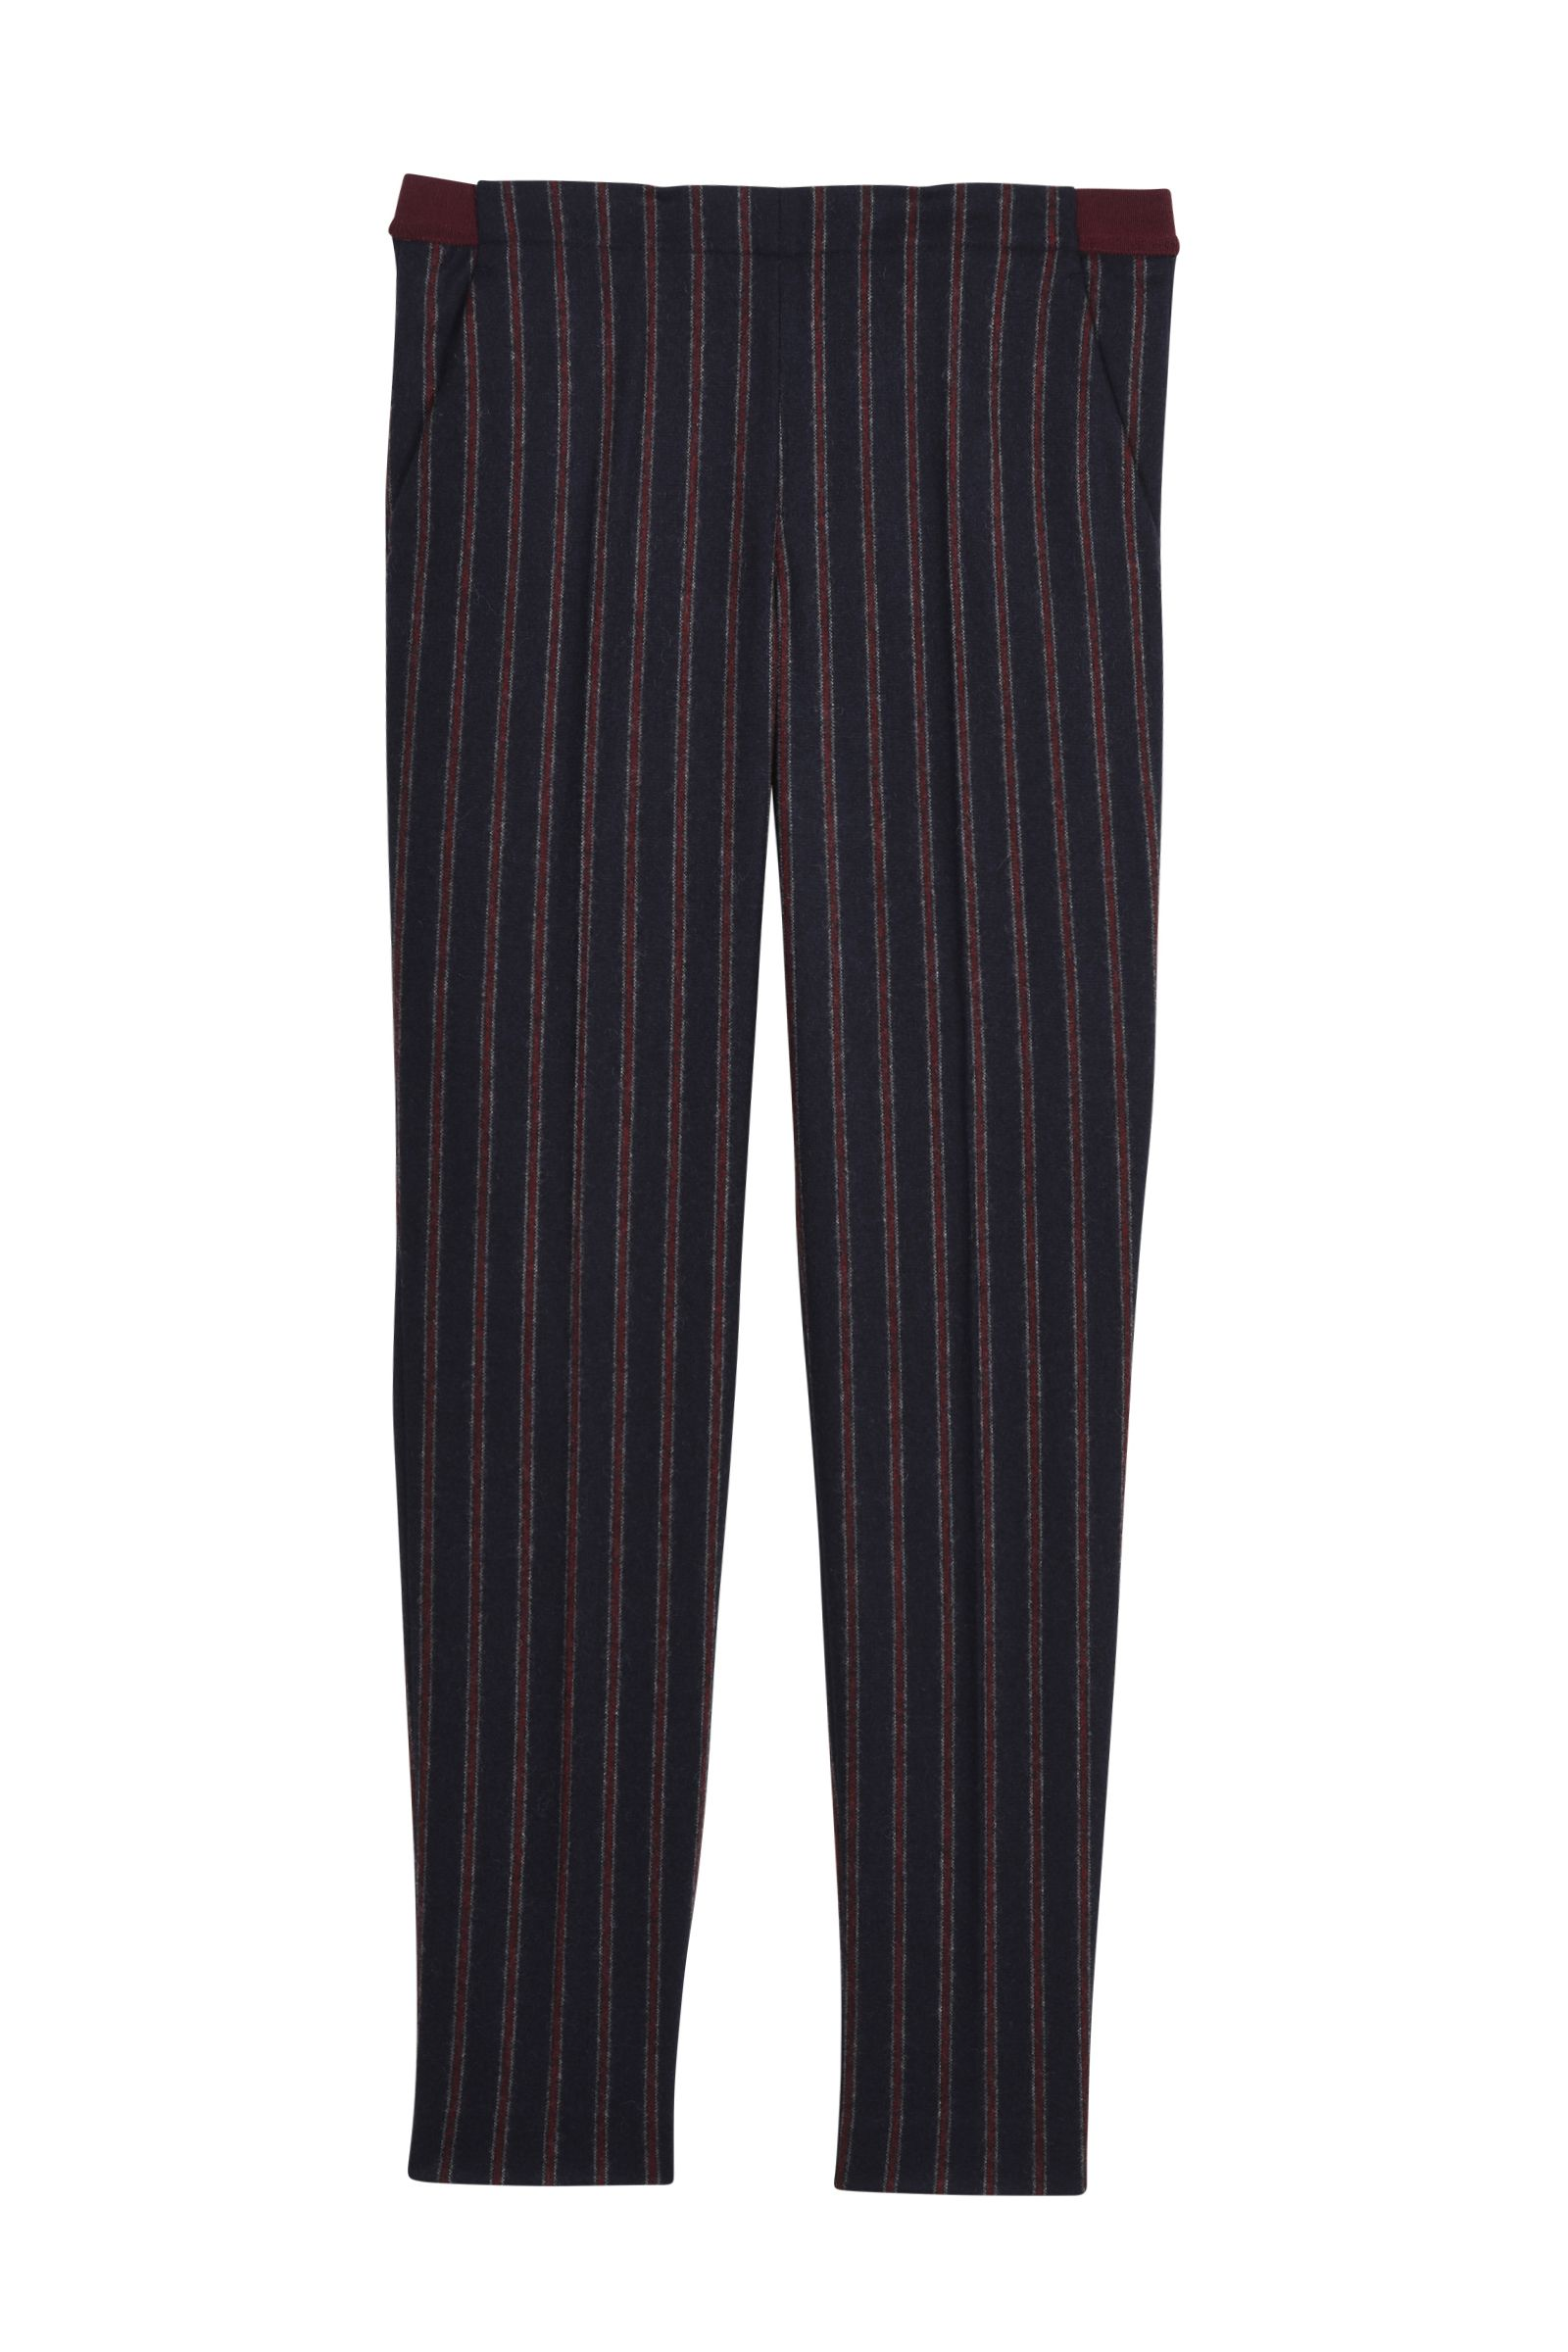 Image 4 du produit Pauline Stripes Trousers